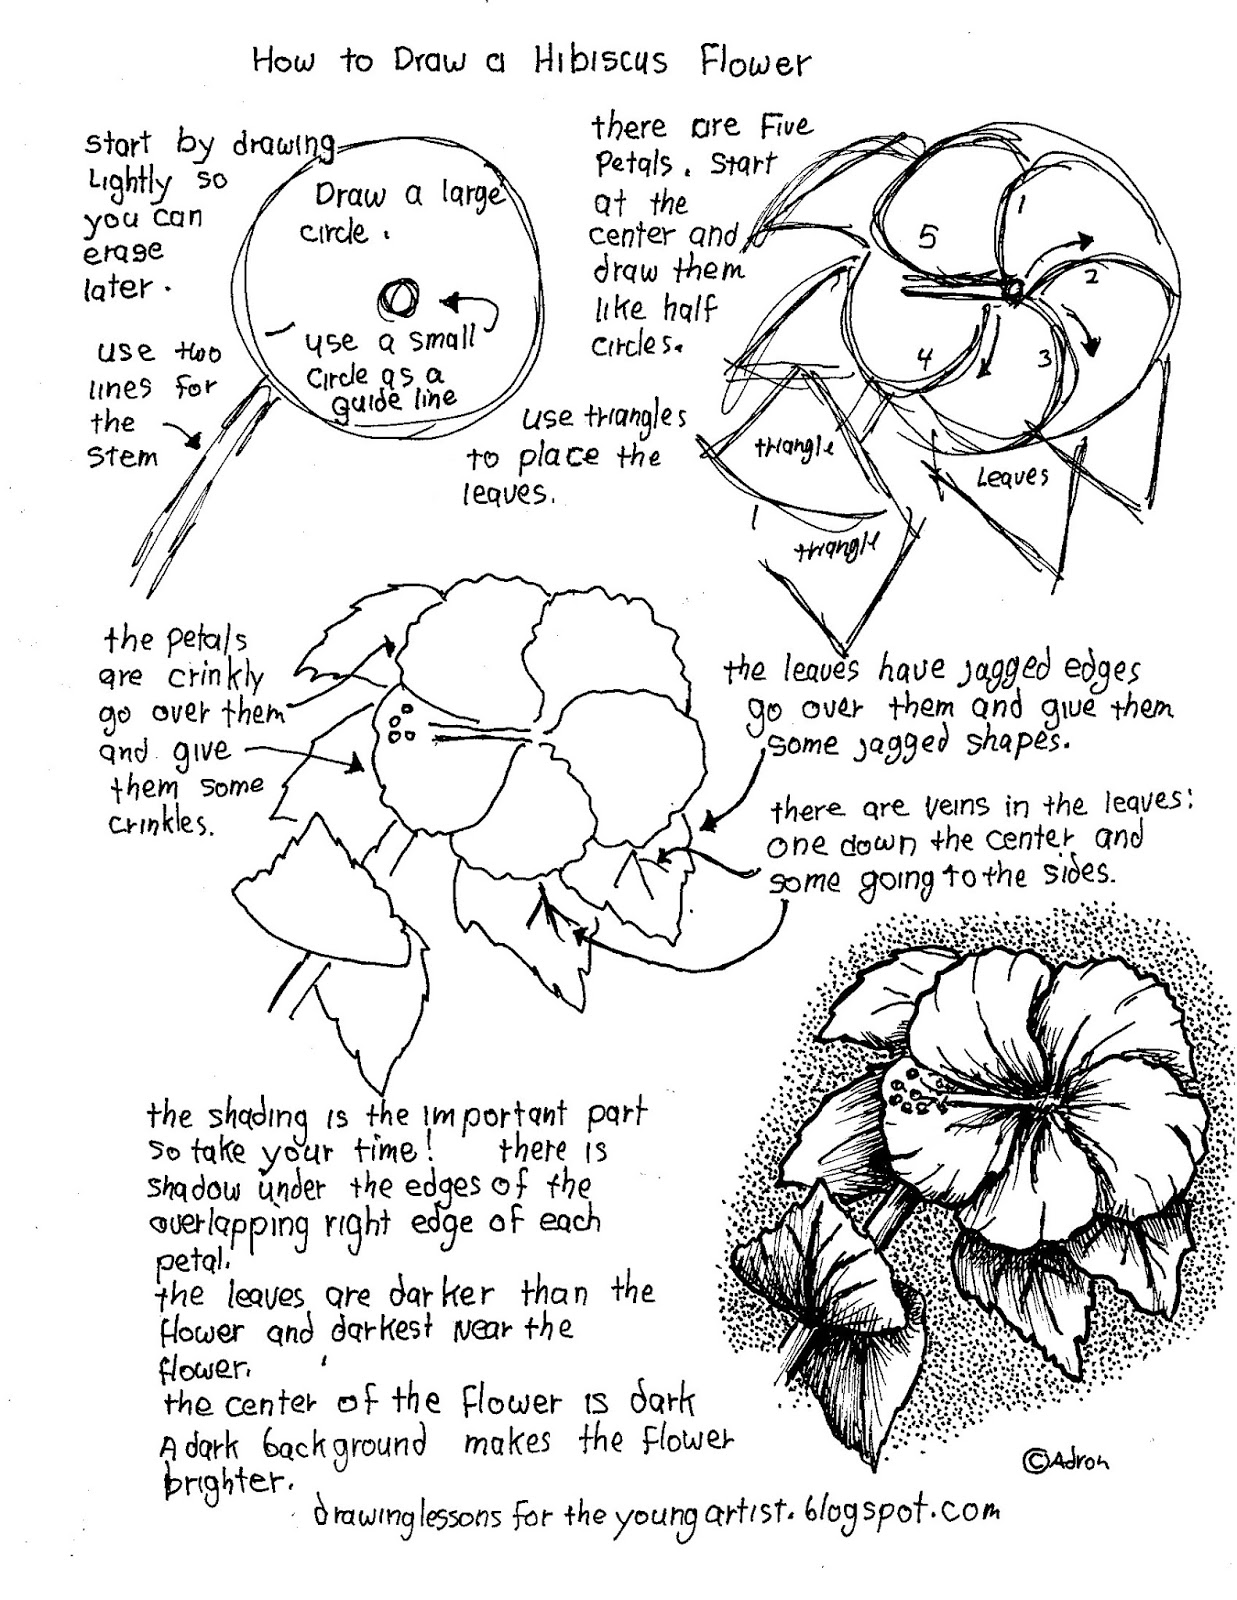 How To Draw Worksheets For The Young Artist Printable How To Draw A Hibiscus Flower Worksheet